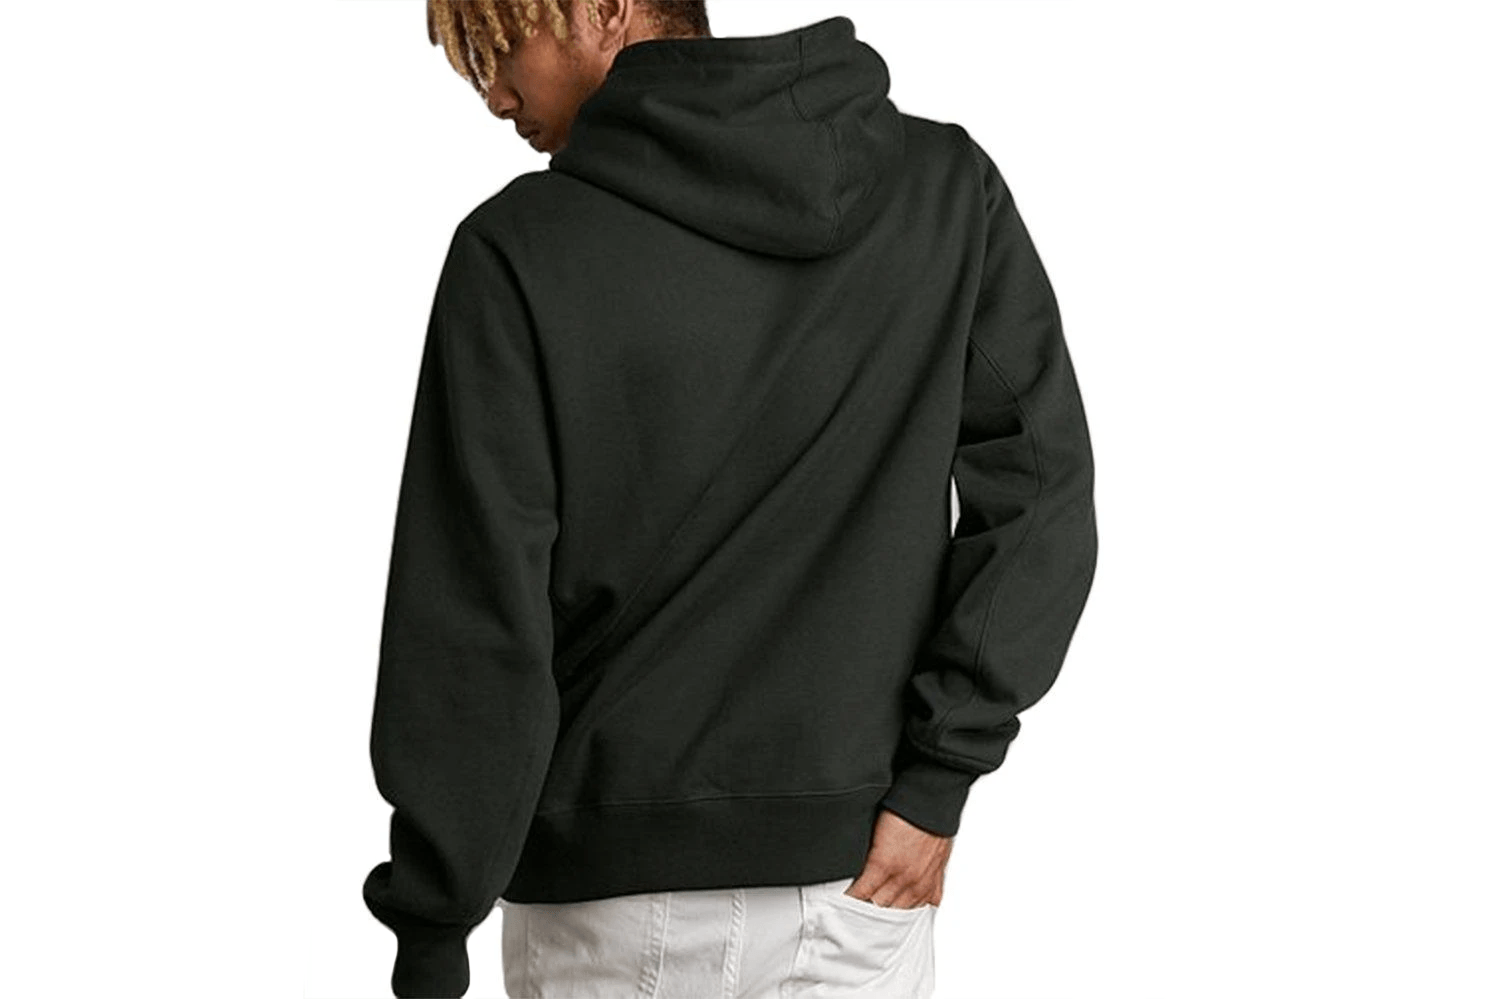 SUPER FLEECE 2.0 PULLOVER HOOD-S4962 MENS SOFTGOODS CHAMPION